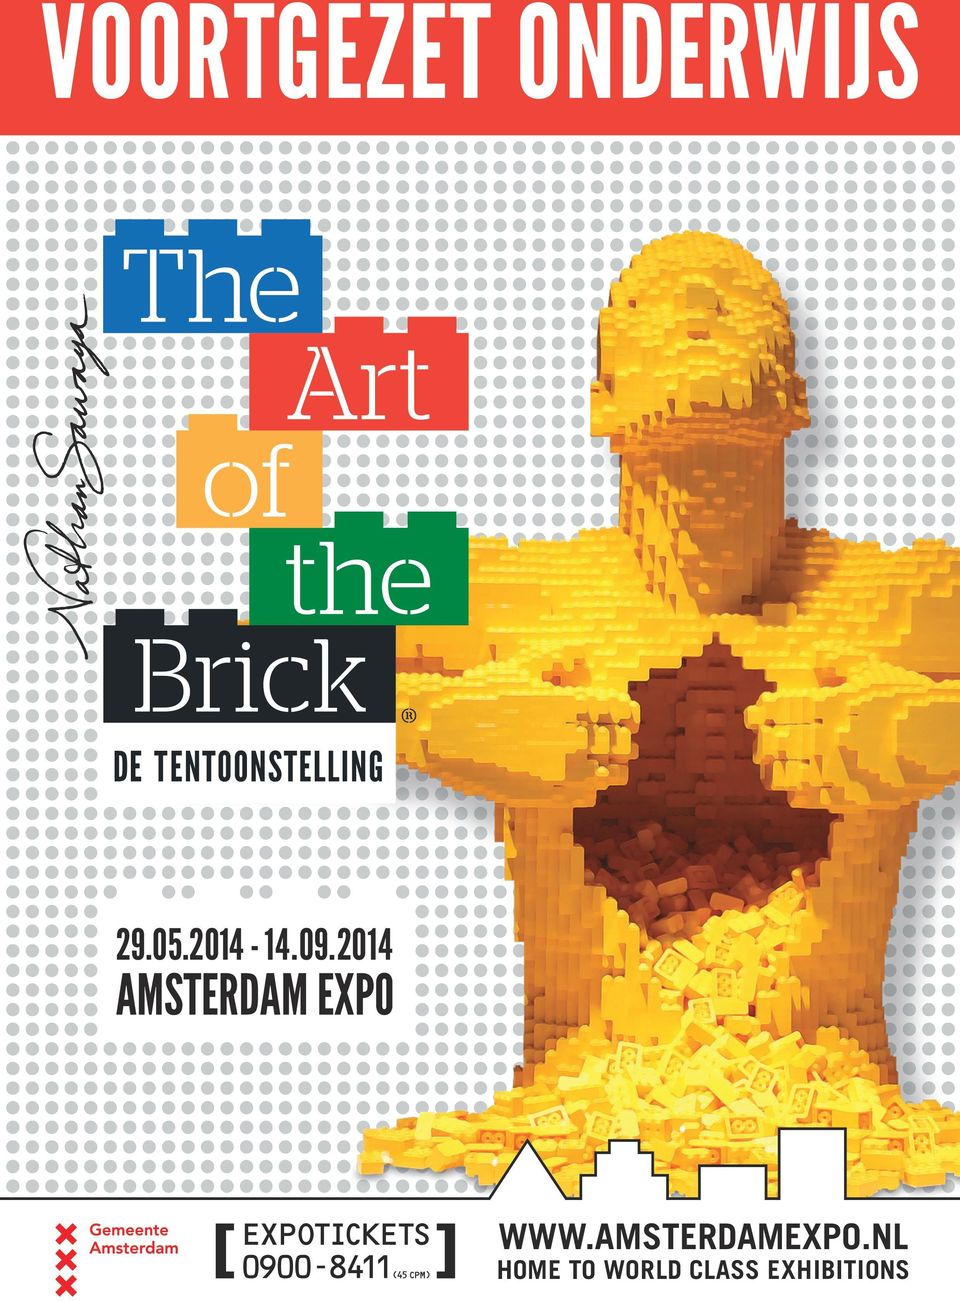 2014 AMSTERDAM EXPO WWW.